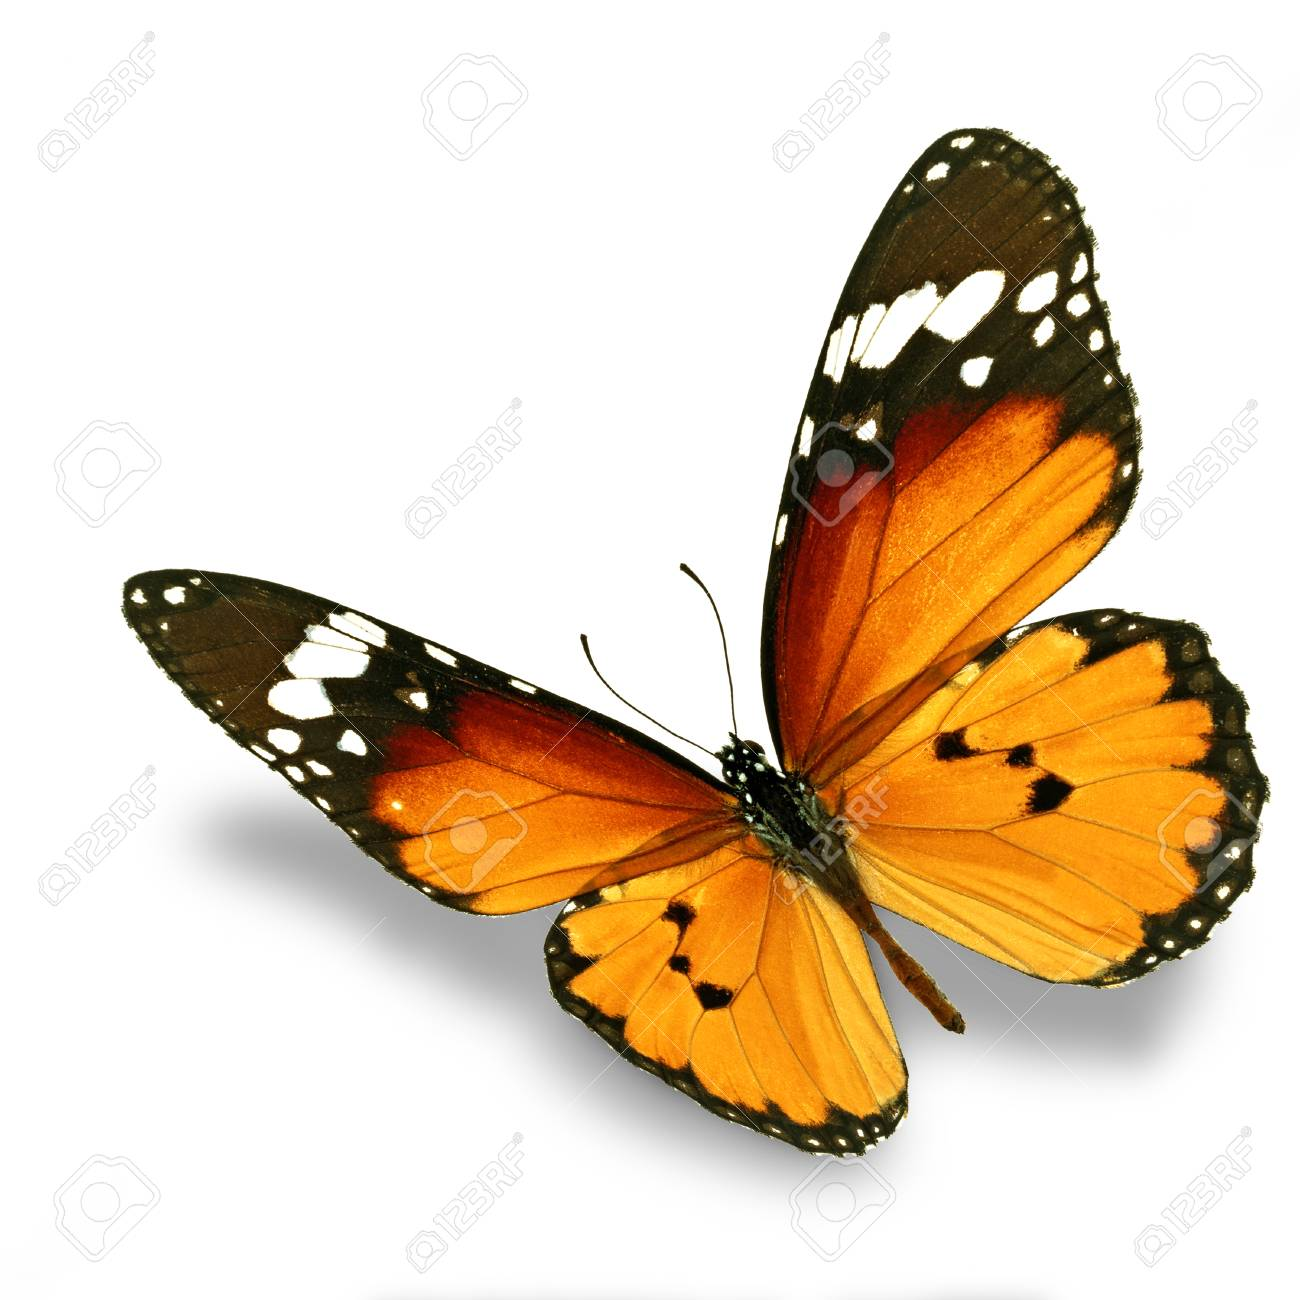 Beautiful orange butterfly flying isolated on white background - 33943629